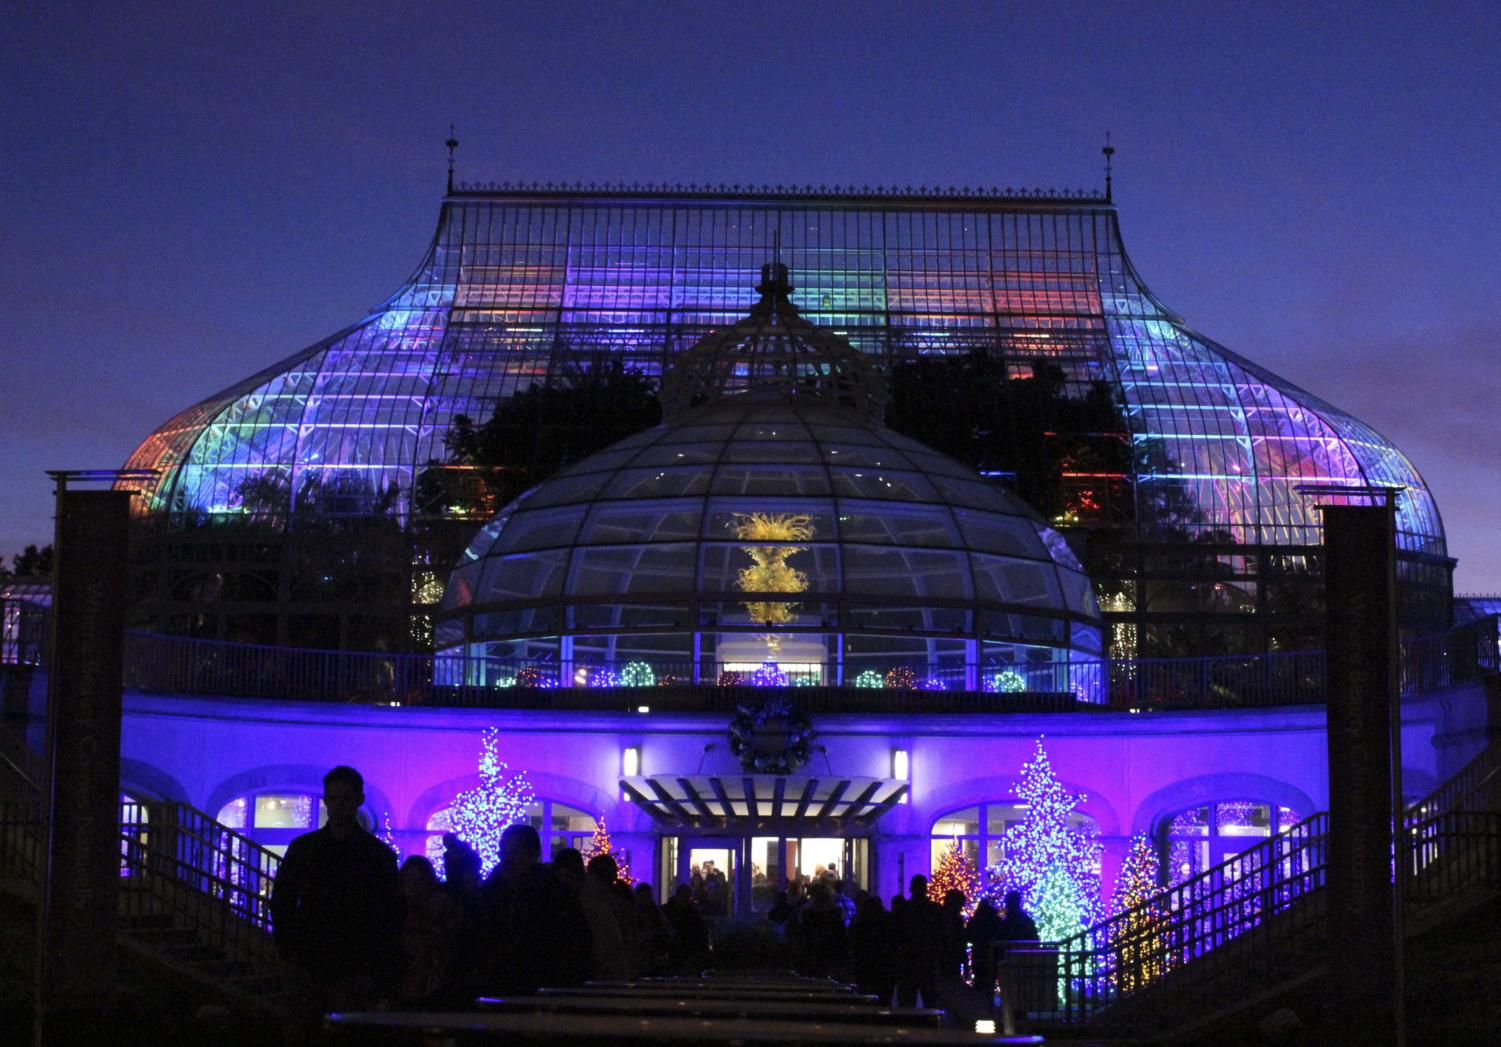 Phipps provides a warm greenhouse location to decompress after finals.